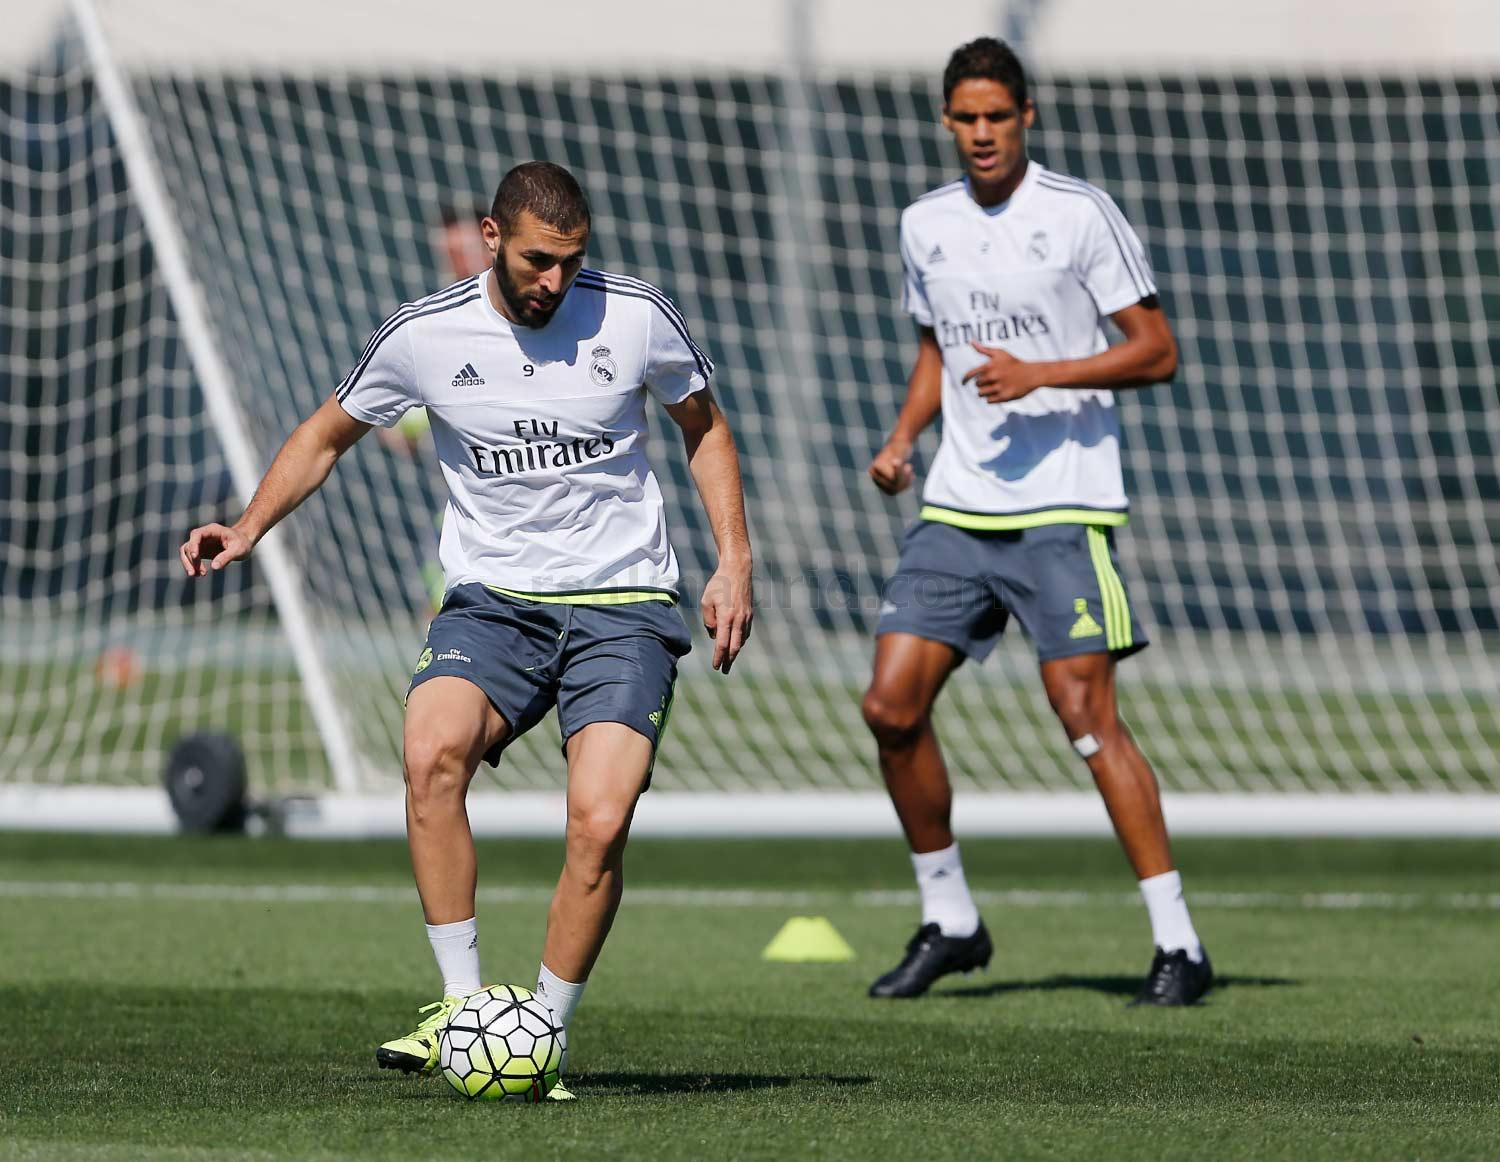 Real Madrid - Entrenamiento del Real Madrid - 11-09-2015